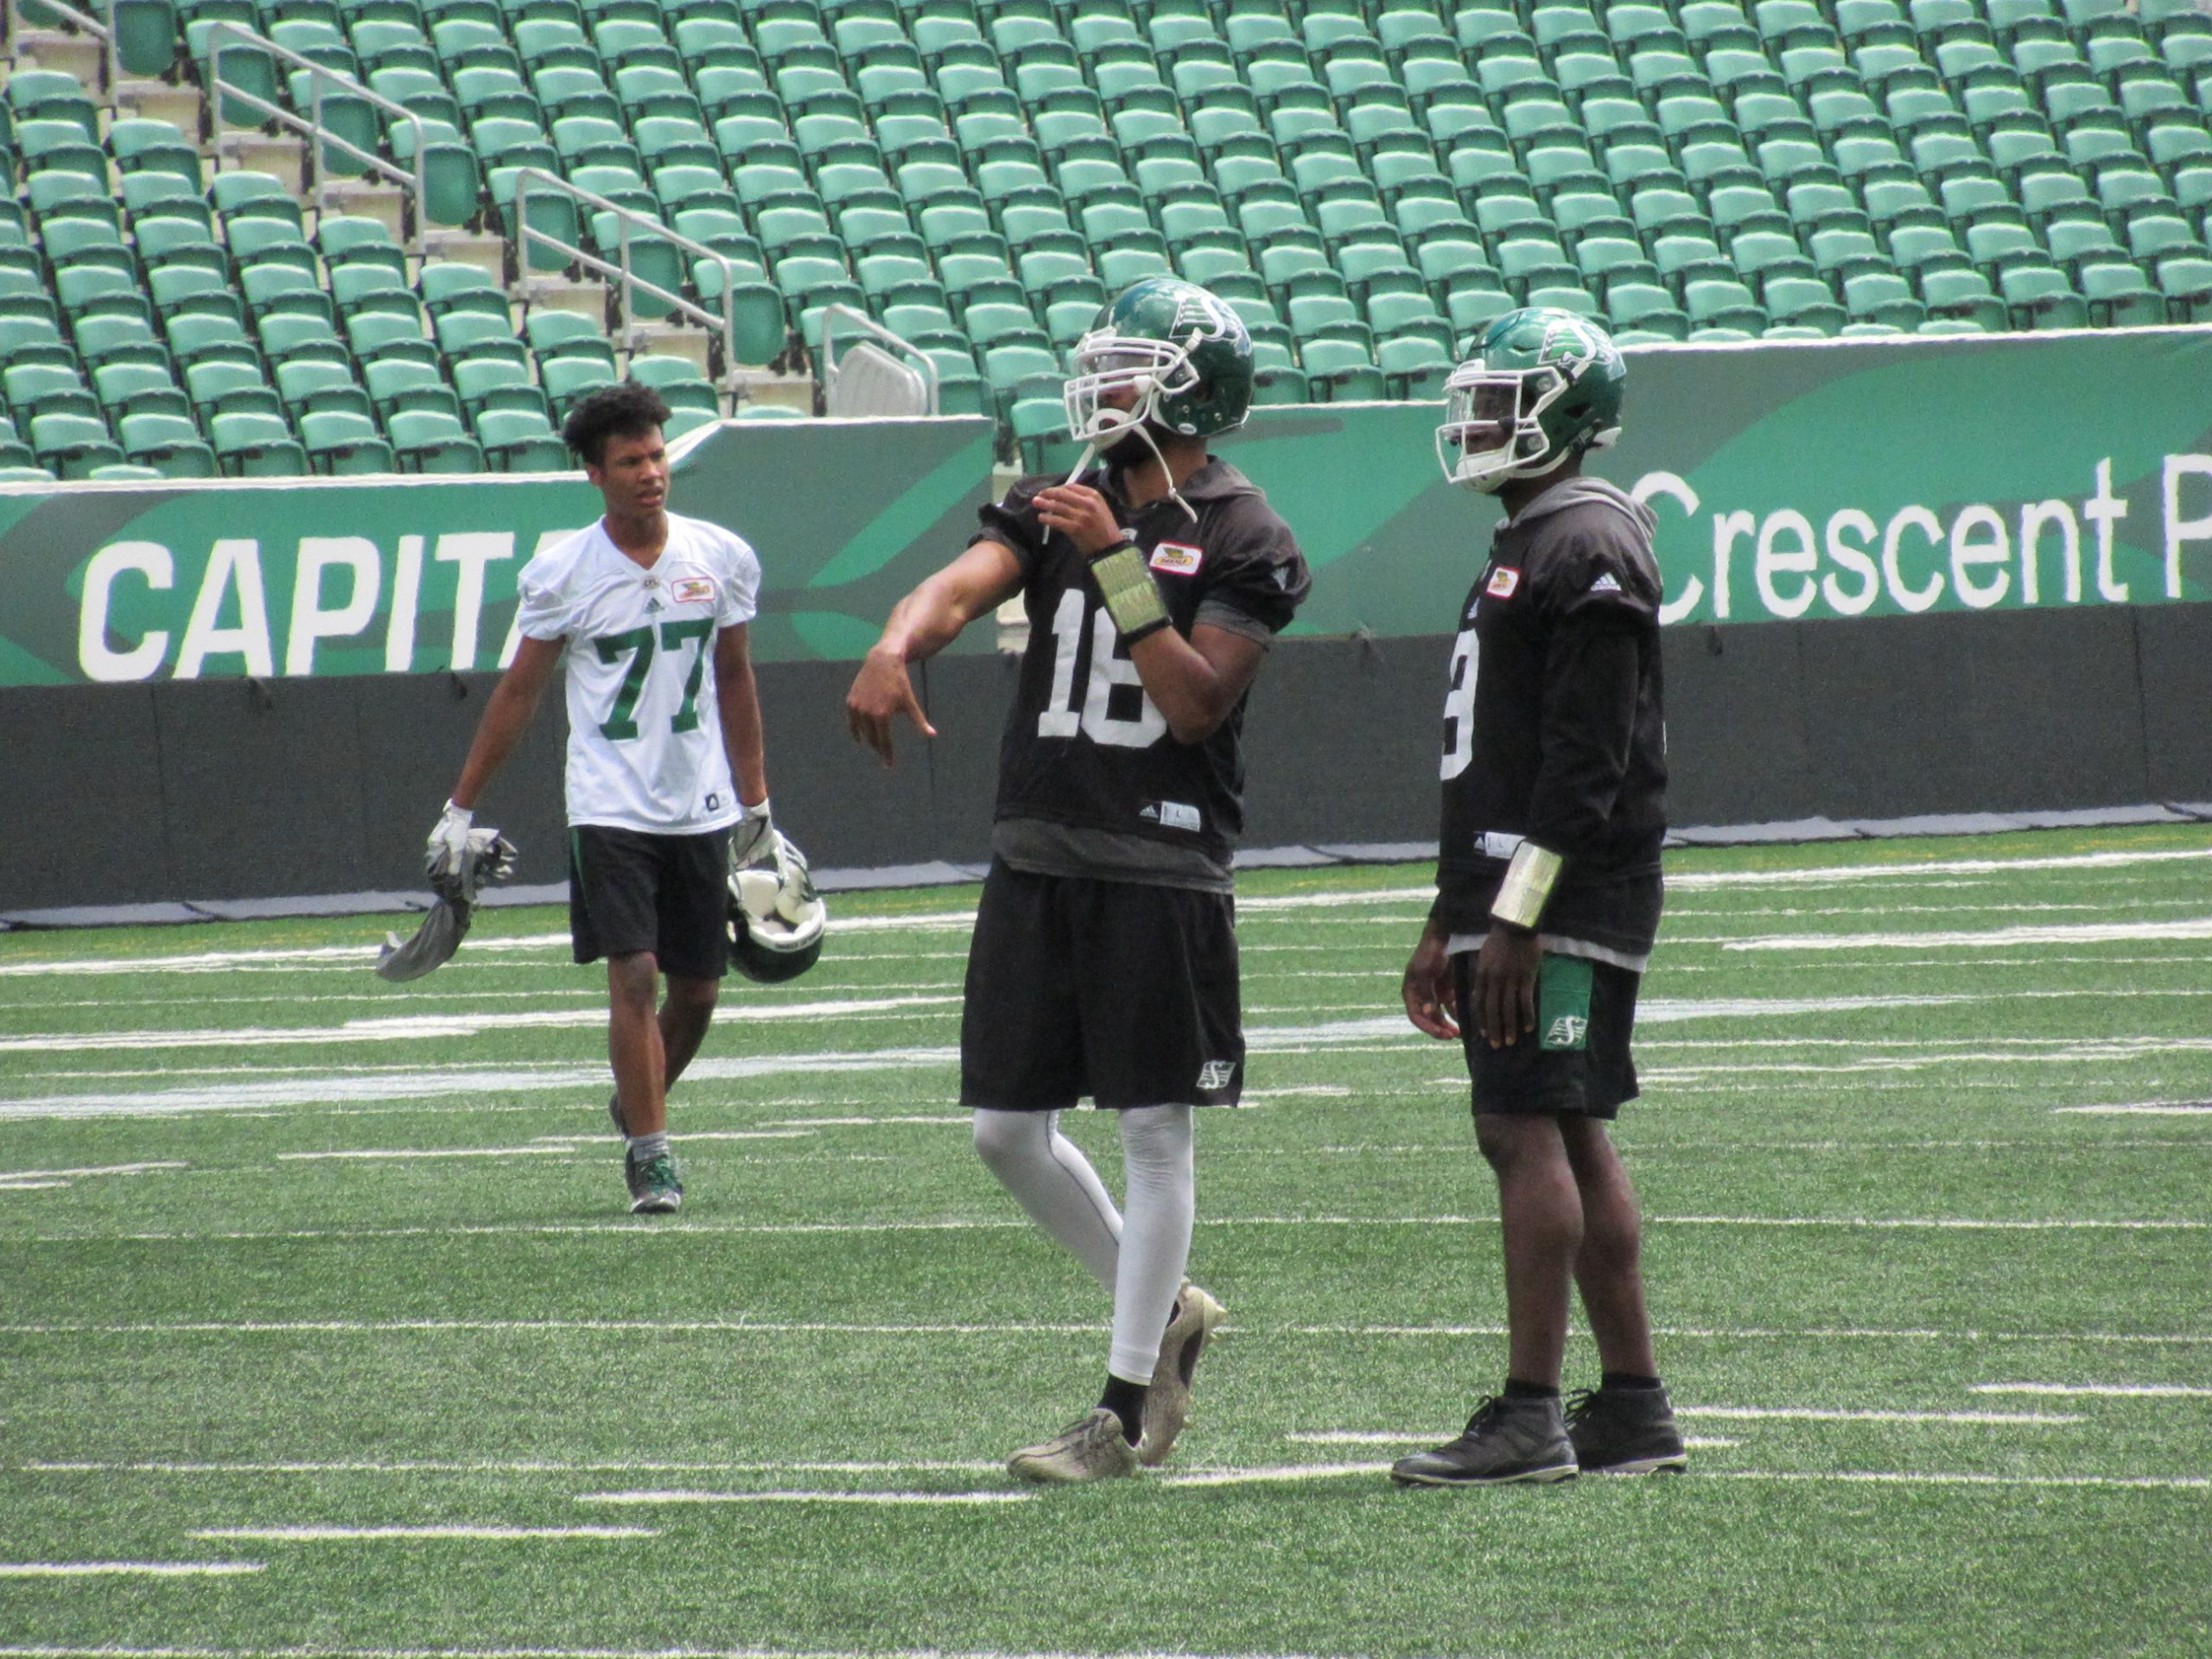 Brandon Bridge To Start Against Ticats